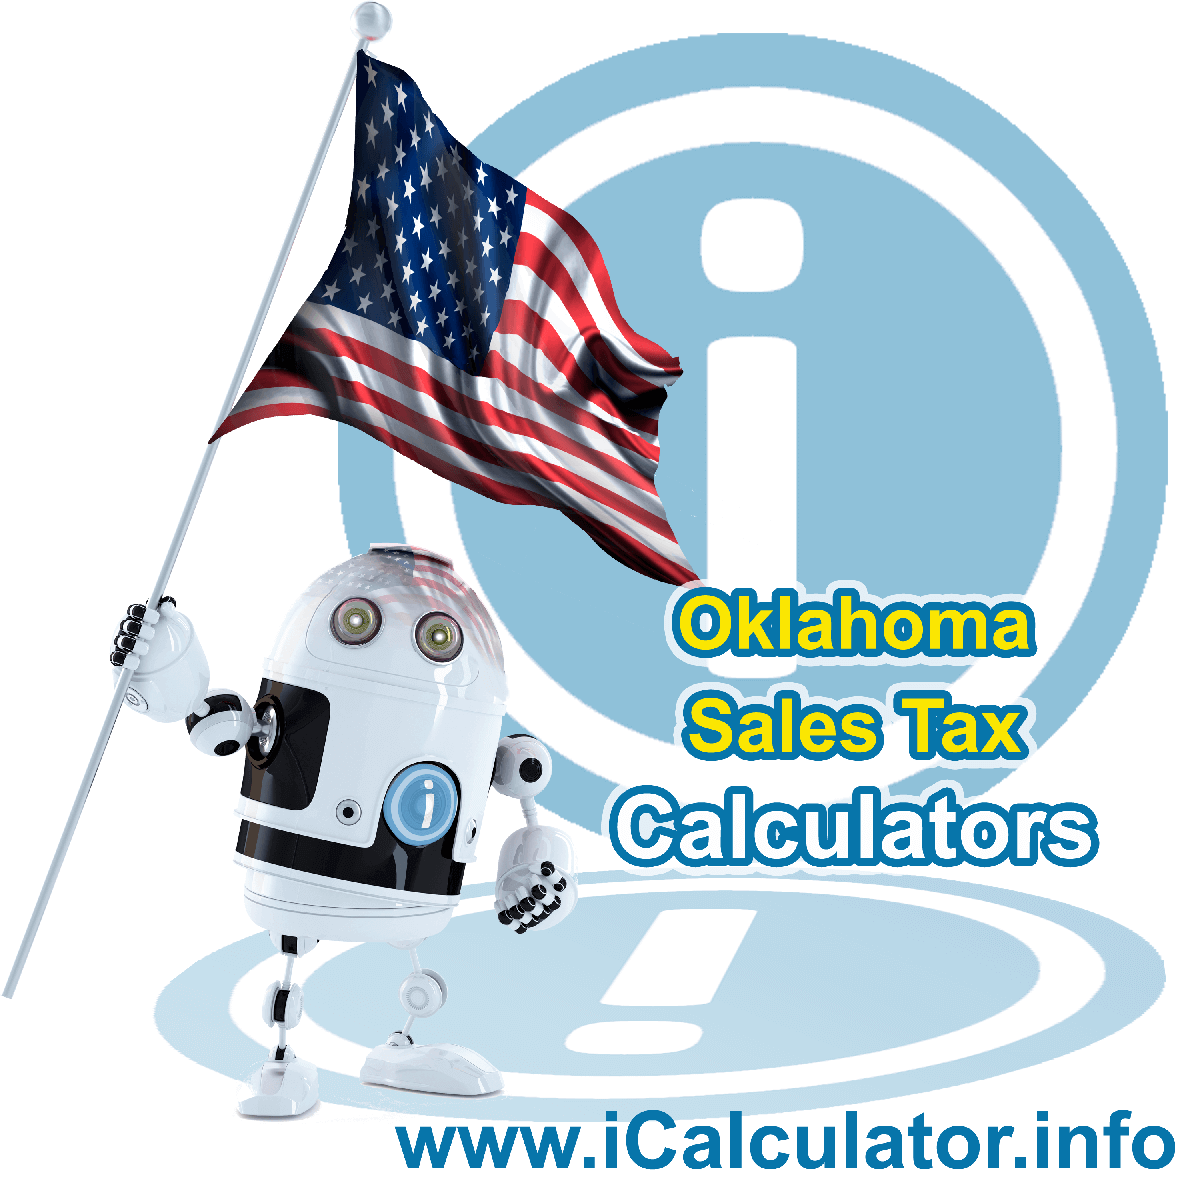 Oklahoma Sales Tax Comparison Calculator: This image illustrates a calculator robot comparing sales tax in Oklahoma manually using the Oklahoma Sales Tax Formula. You can use this information to compare Sales Tax manually or use the Oklahoma Sales Tax Comparison Calculator to calculate and compare Oklahoma sales tax online.